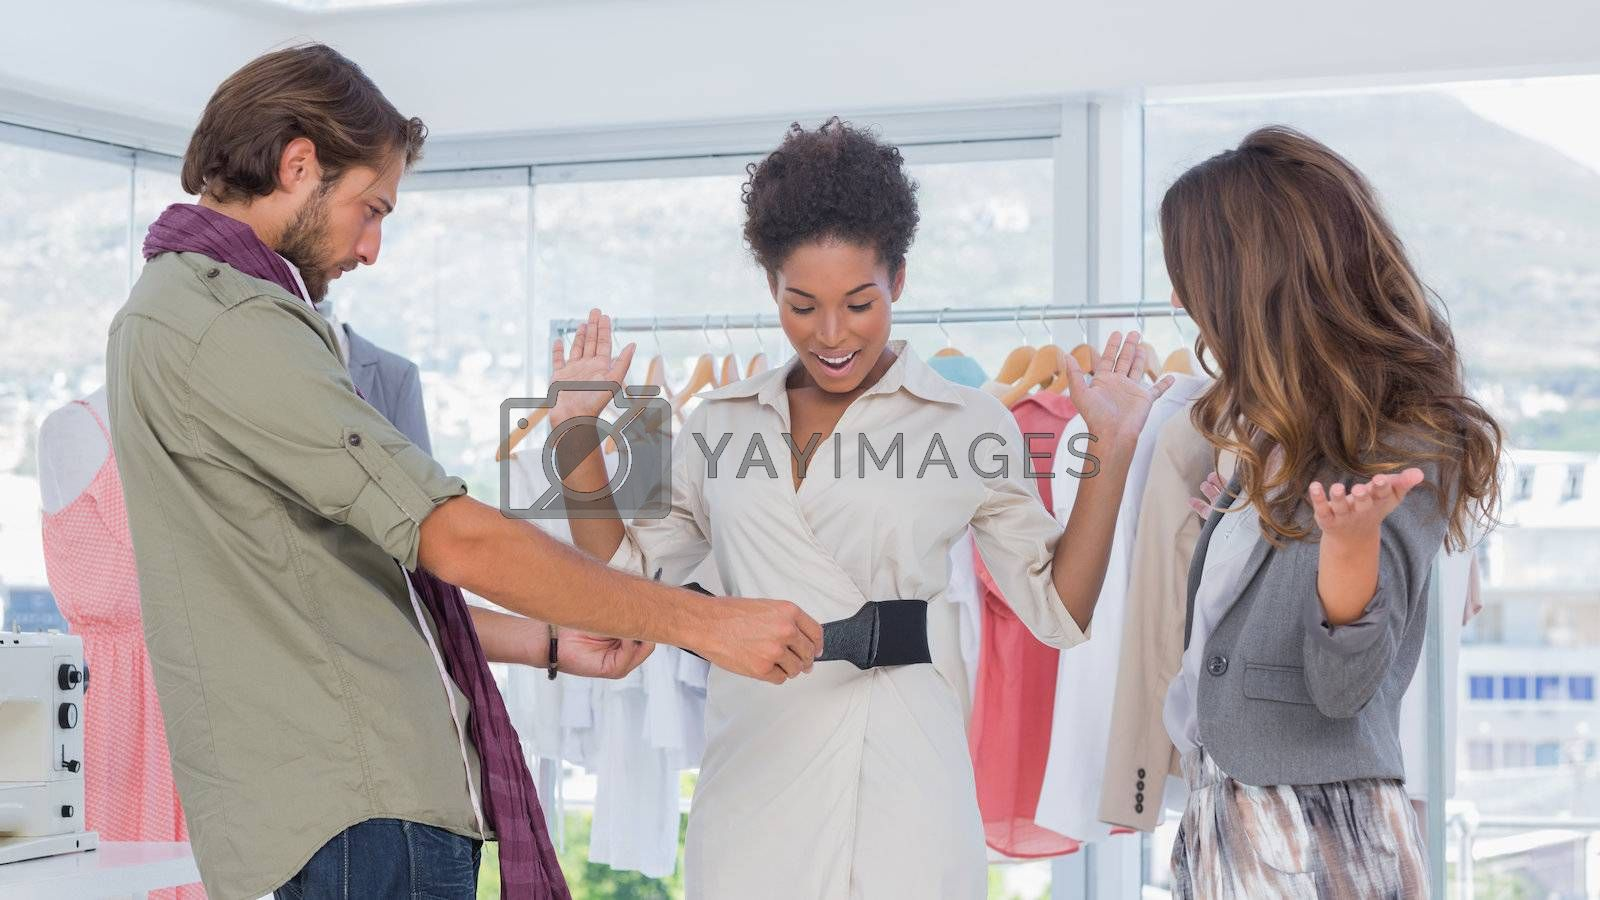 Cheerful model and fashion designers